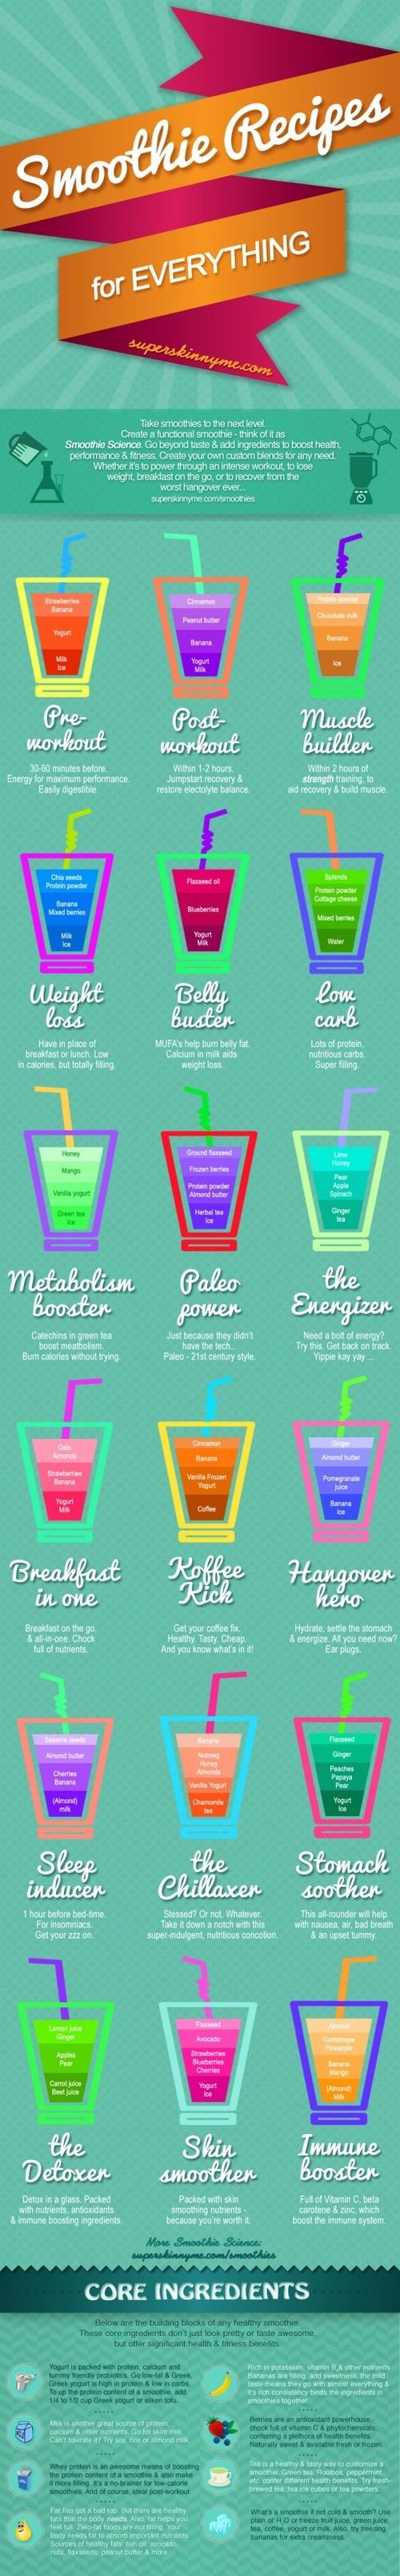 "Recipes for smoothies, my favorite is the ""Muscle builder"""